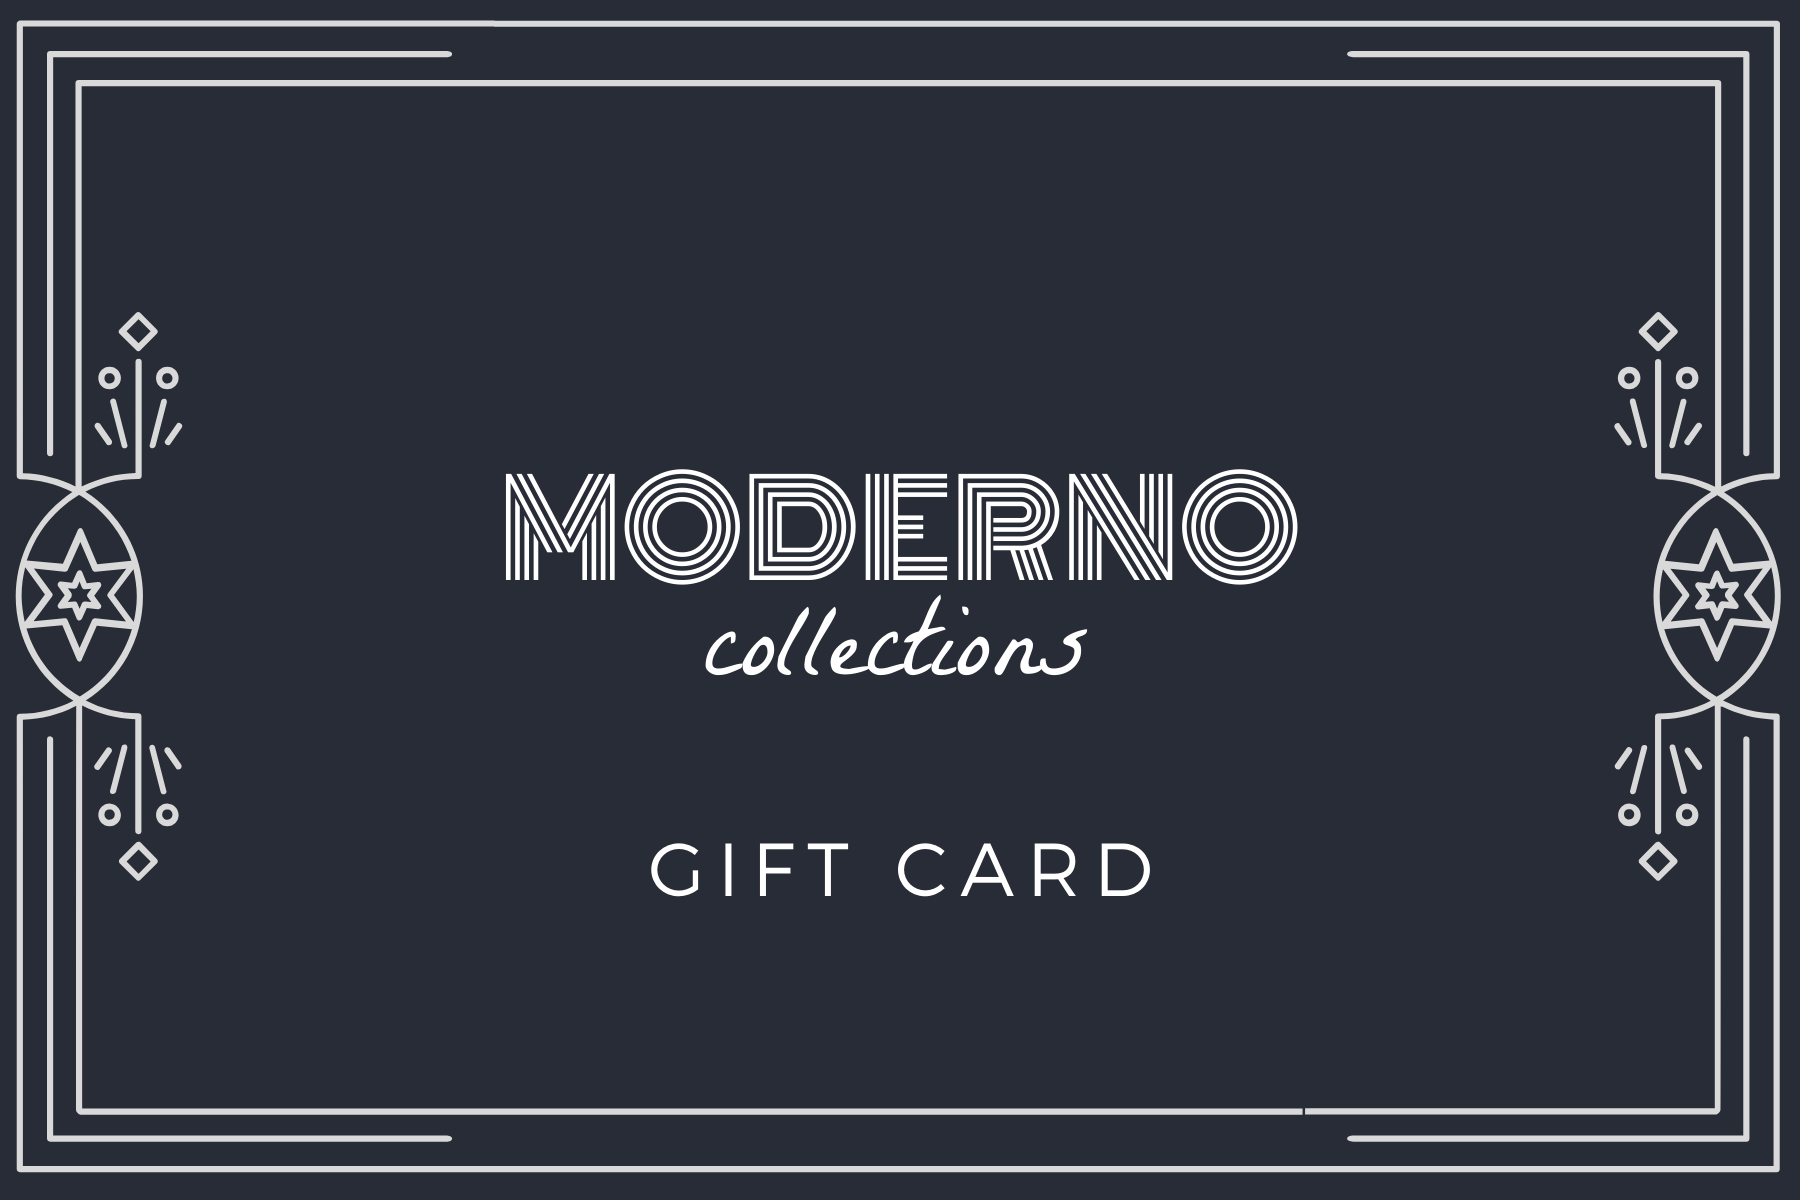 Gift Card - Moderno Collections